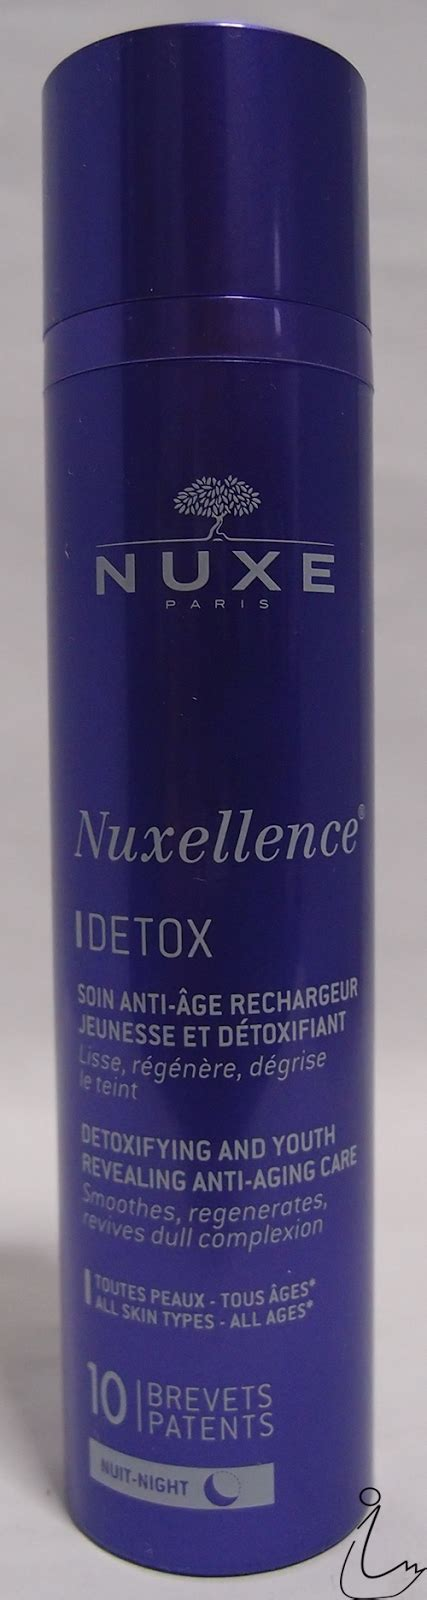 How To Use Nuxe Nuxellence Detox by The Swanple Review Nuxe Nuxellence Eclat And Nuxellence